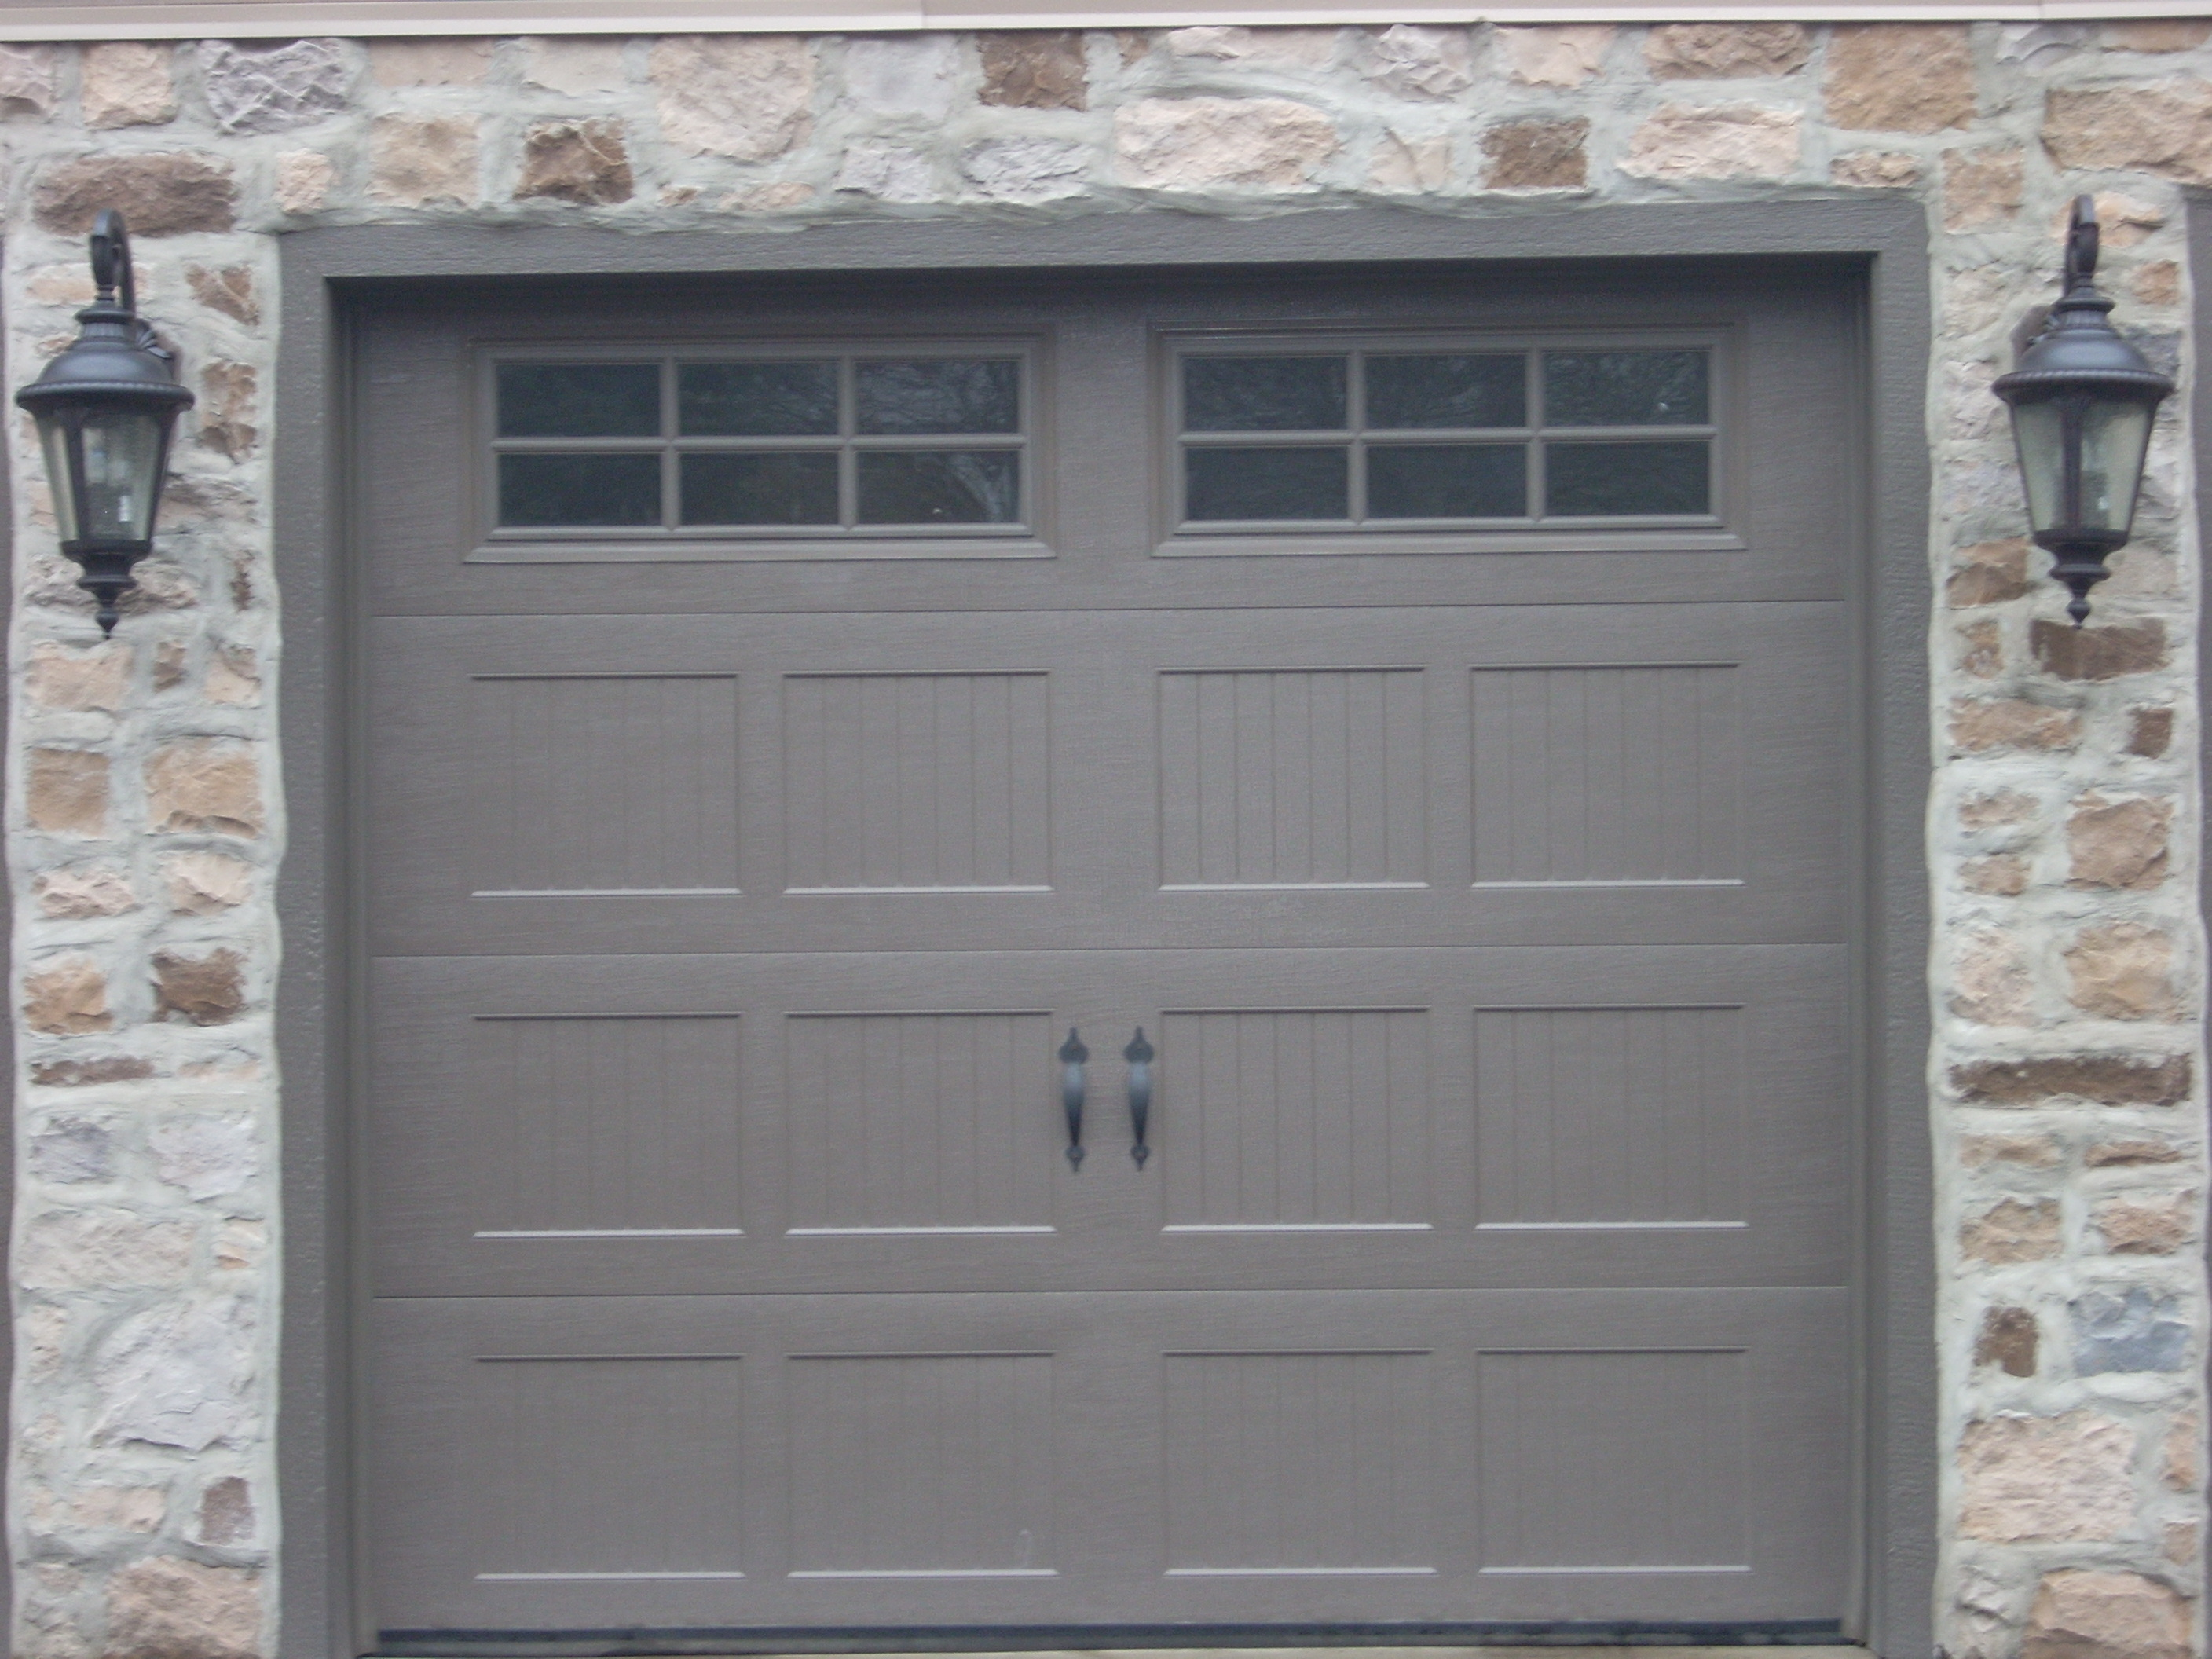 Wayne doors classic steel 8300 sonoma ranch panel for Wayne dalton 9100 series